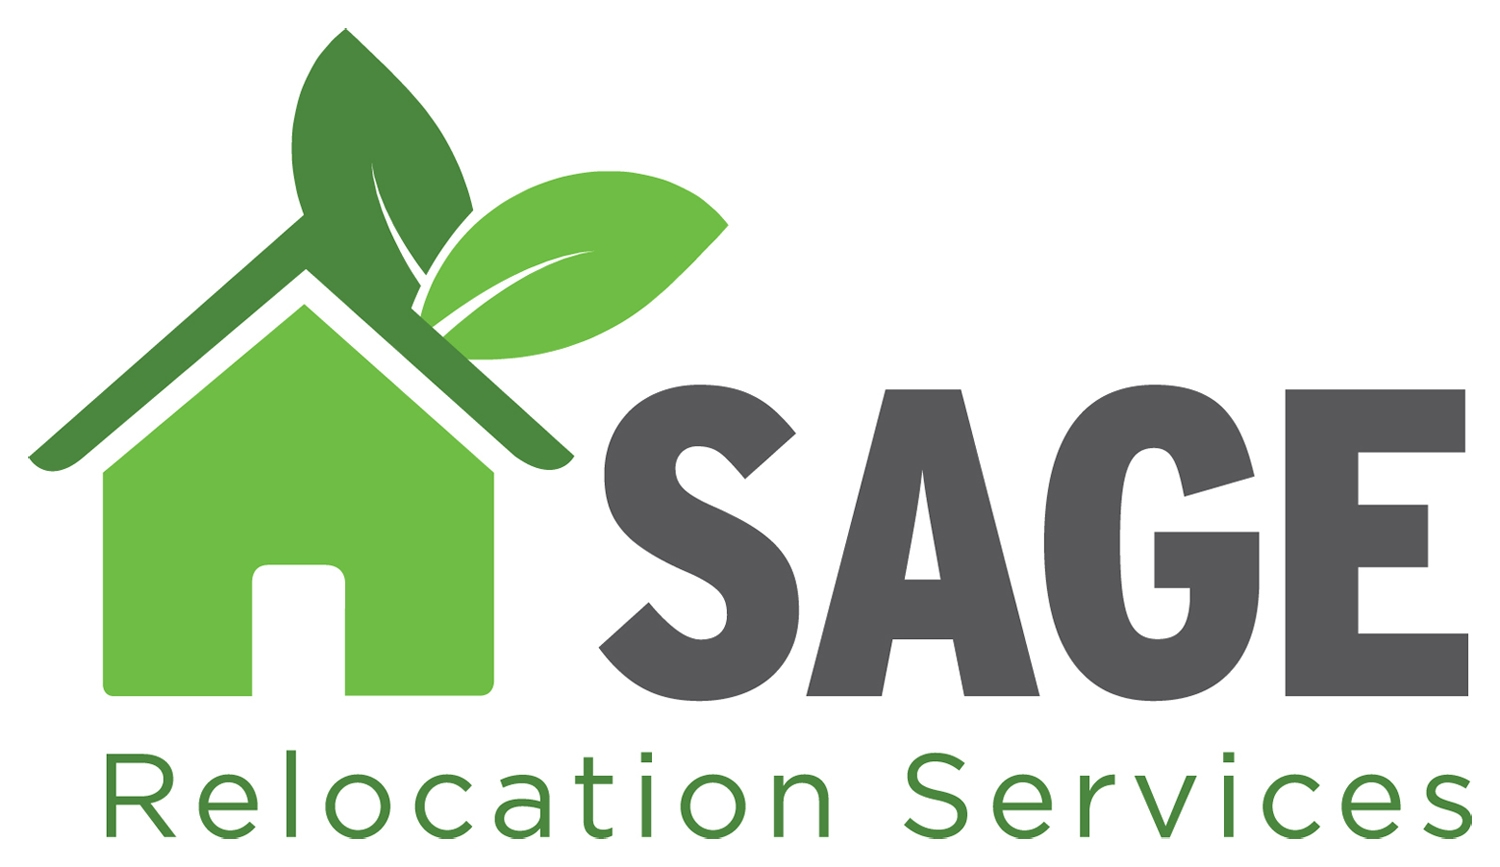 SAGE Relocation Services